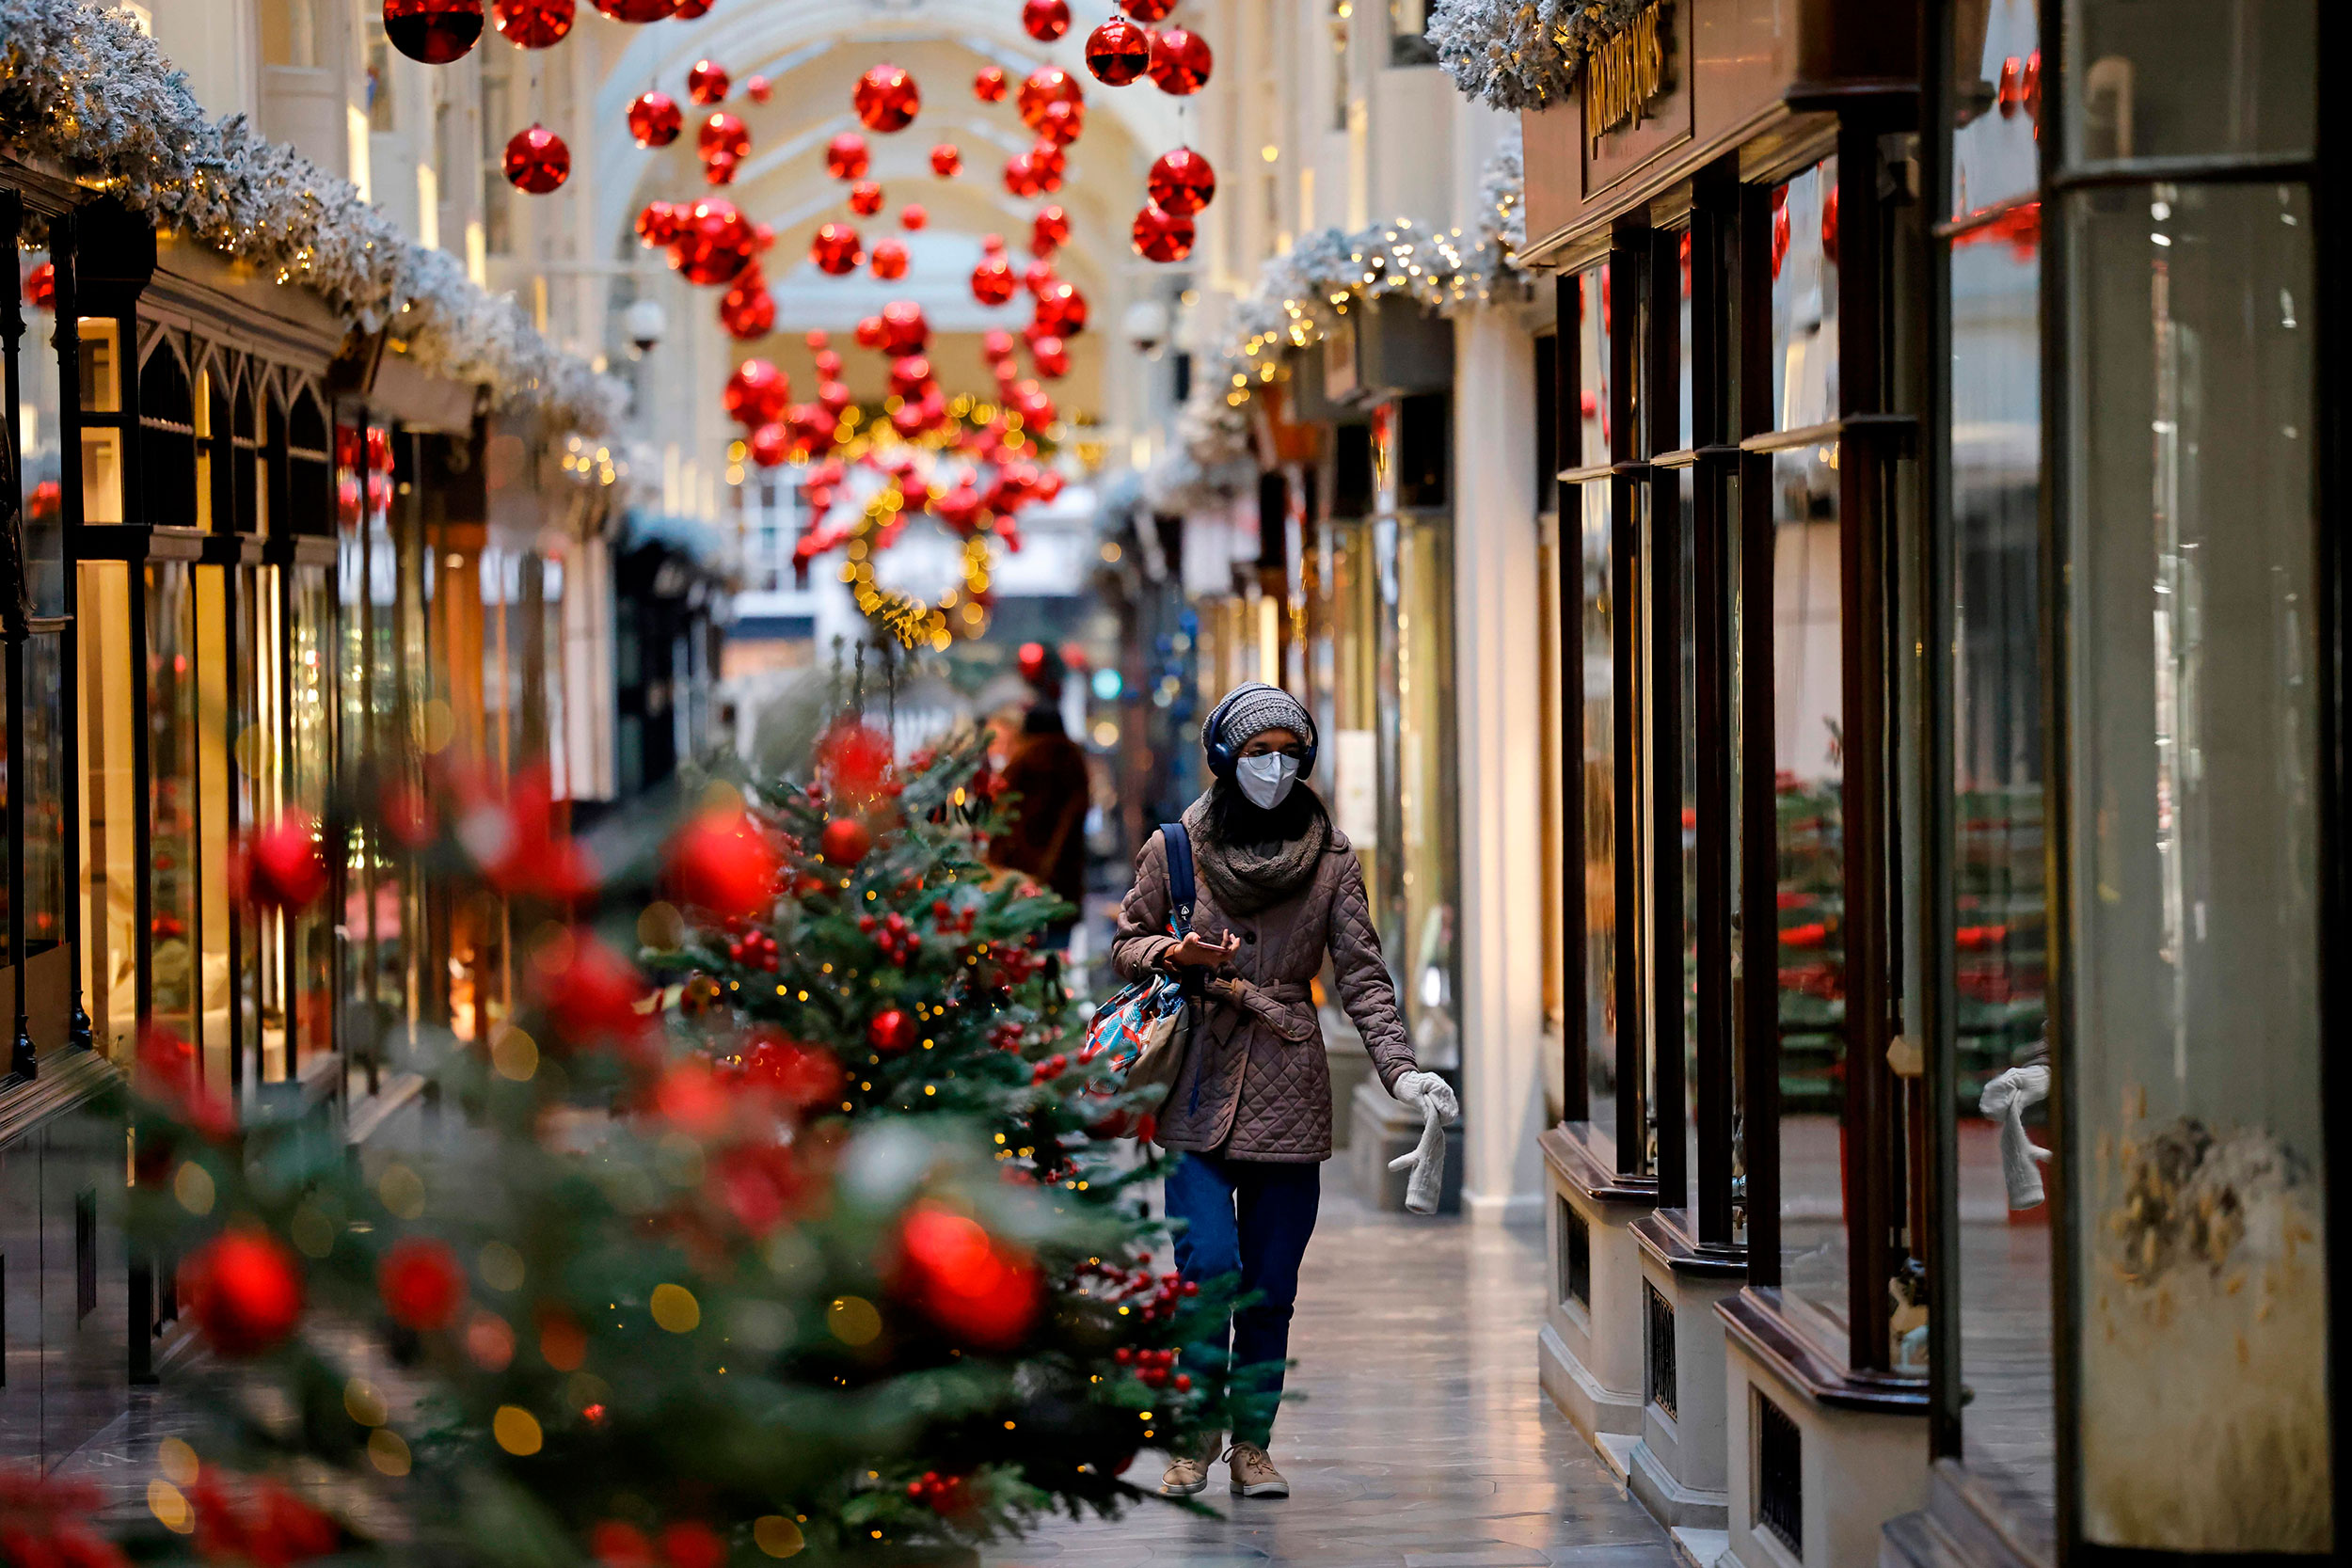 A pedestrian wearing a protective face covering to combat the spread of the coronavirus, walks past Christmas-themed window displays inside Burlington Arcade in central London on November 27, 2020, as life under a second lockdown continues in England. - England will return to a regional tiered system when the national stay-at-home order ends on December 2, and 23.3 million residents in the worst-hit areas are set to enter the